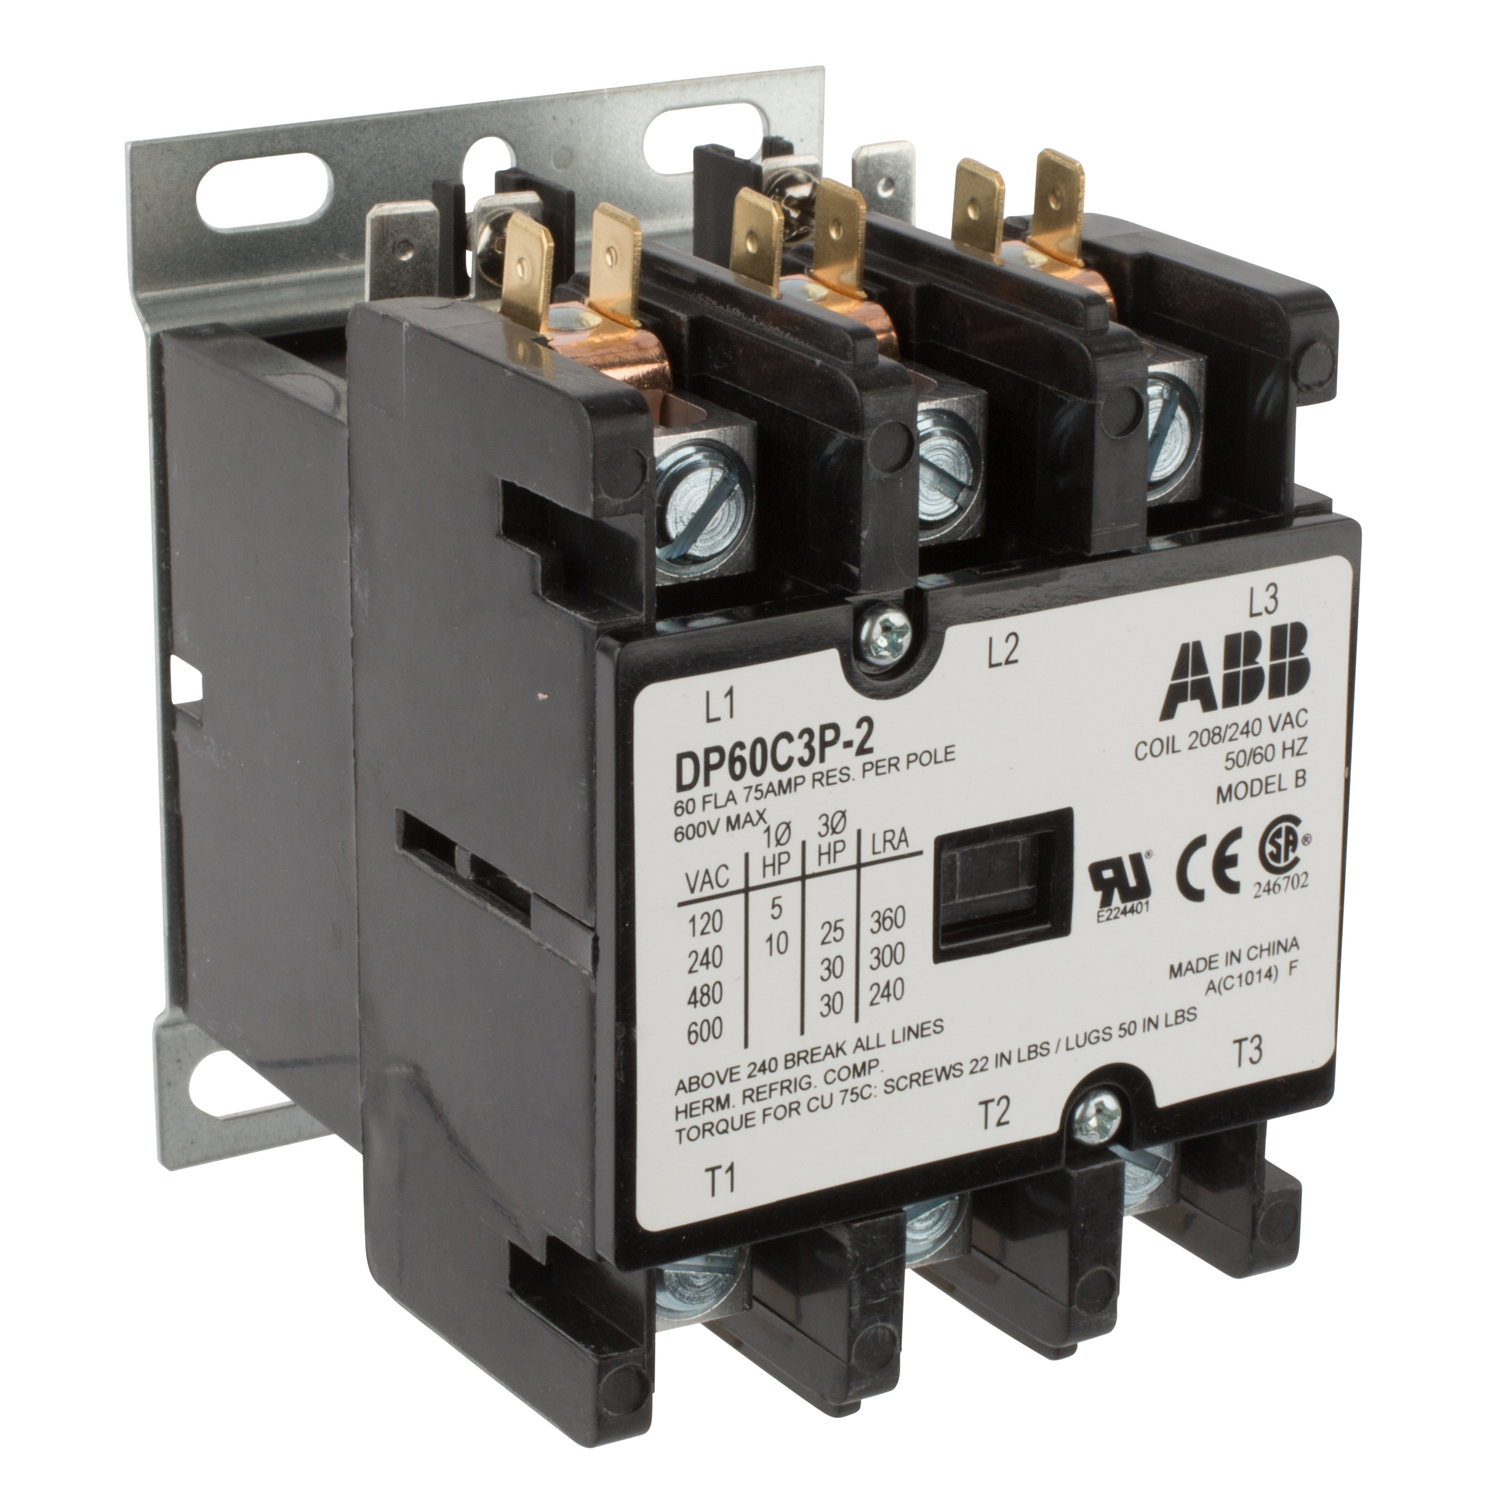 ABB DP60C3P-2 DPCONTR,60A,3P,240 /208V 60 Amp, 3-Pole, Definite Purpose Contactor, 600V Rated, Screw Terminals, 208/240V AC Coil. **THESE CONTACTORS ARE NOT RECOMMENDED FOR USE ON LIGHTING CIRCUITS, IF THEY ARE USED ON LIGHTING CIRCUITS, THEY WILL NOT BE COVERED UNDER WARRANTY**